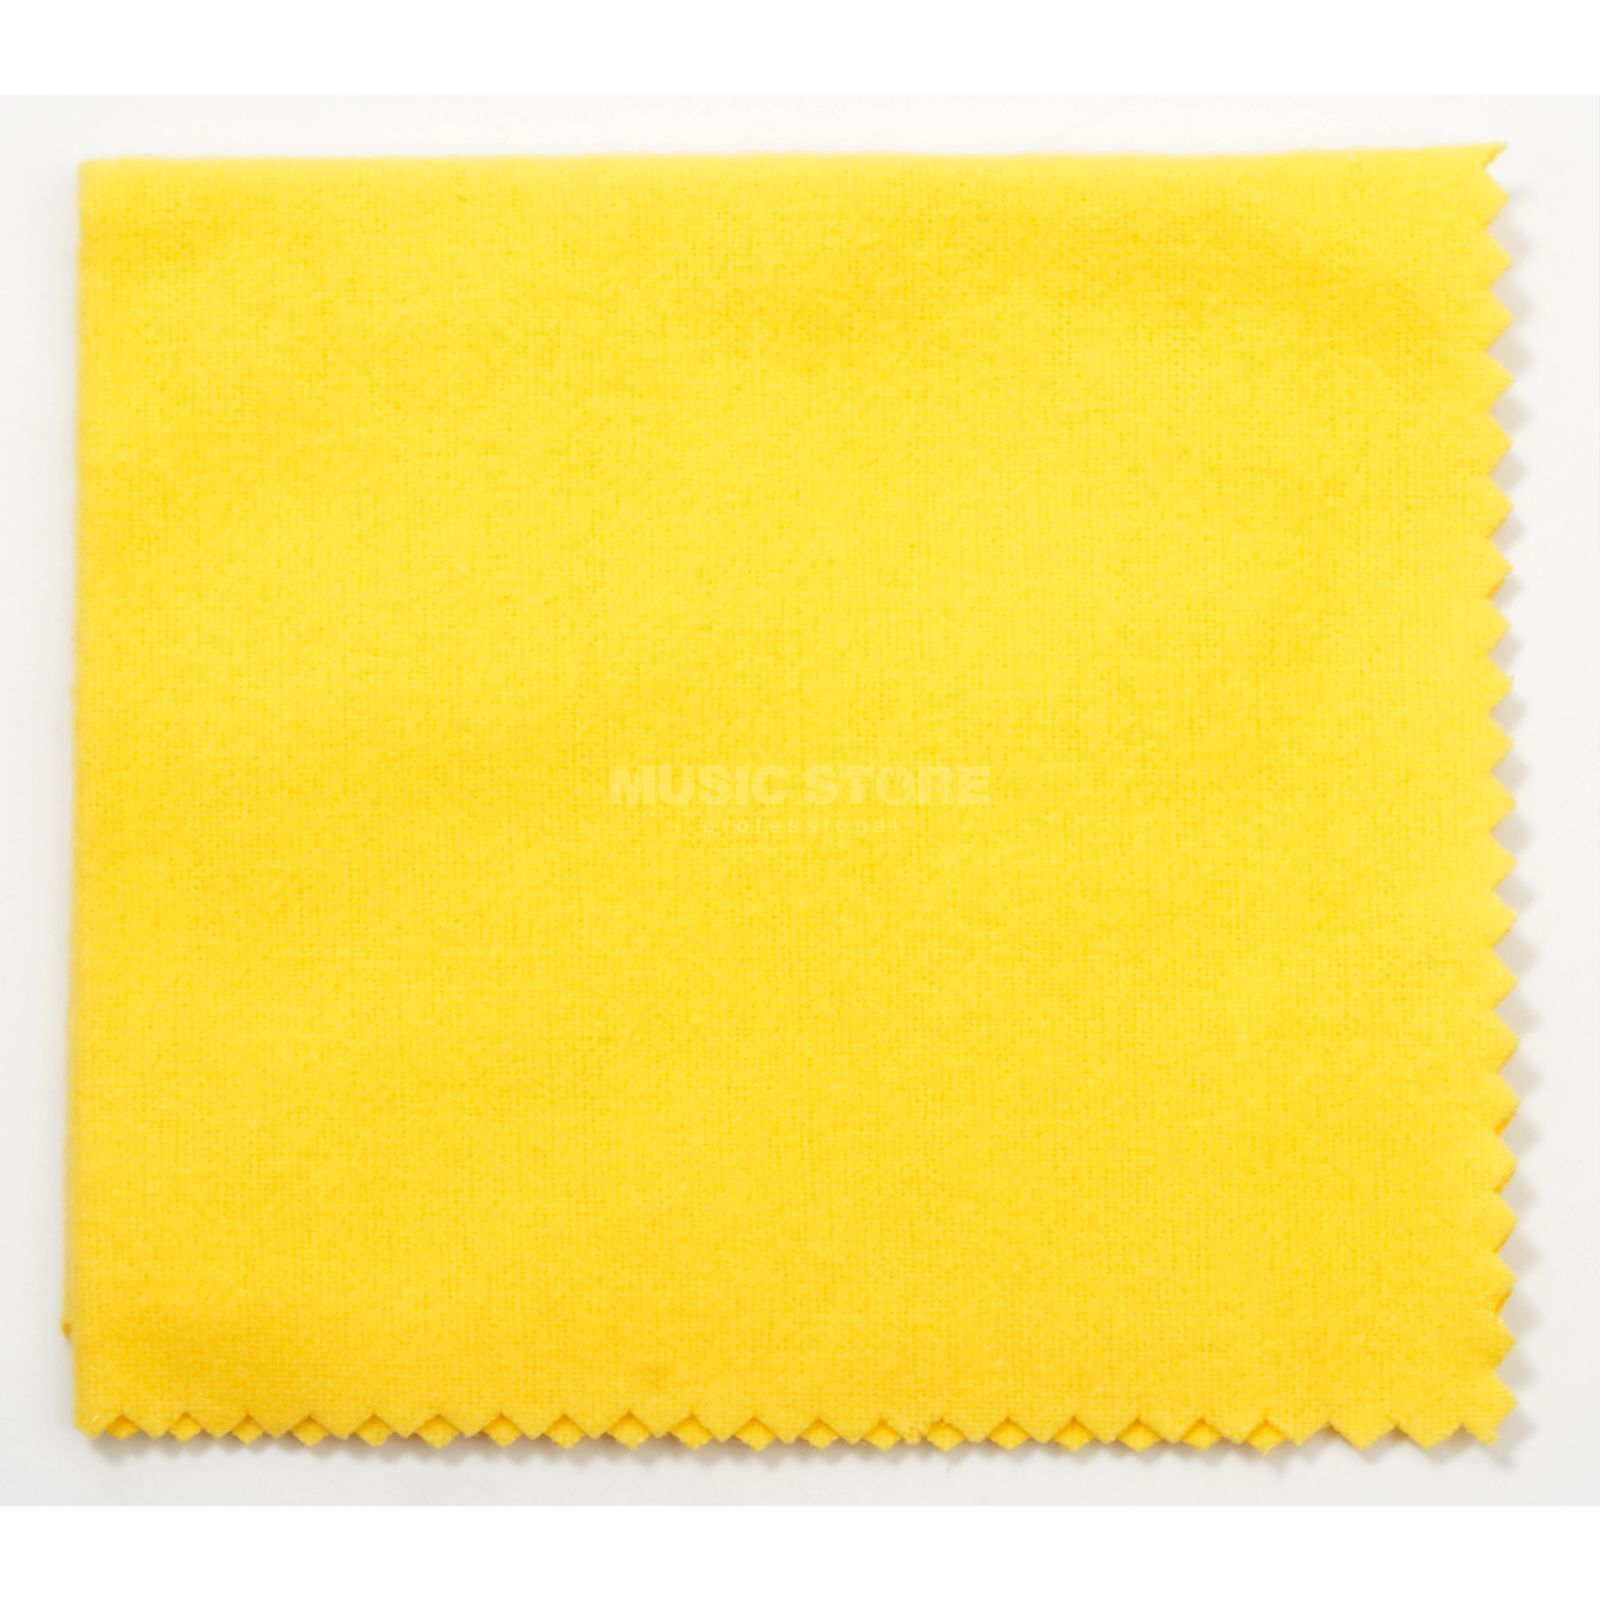 Yamaha Polishing Cloth Size S Yellow Zdjęcie produktu